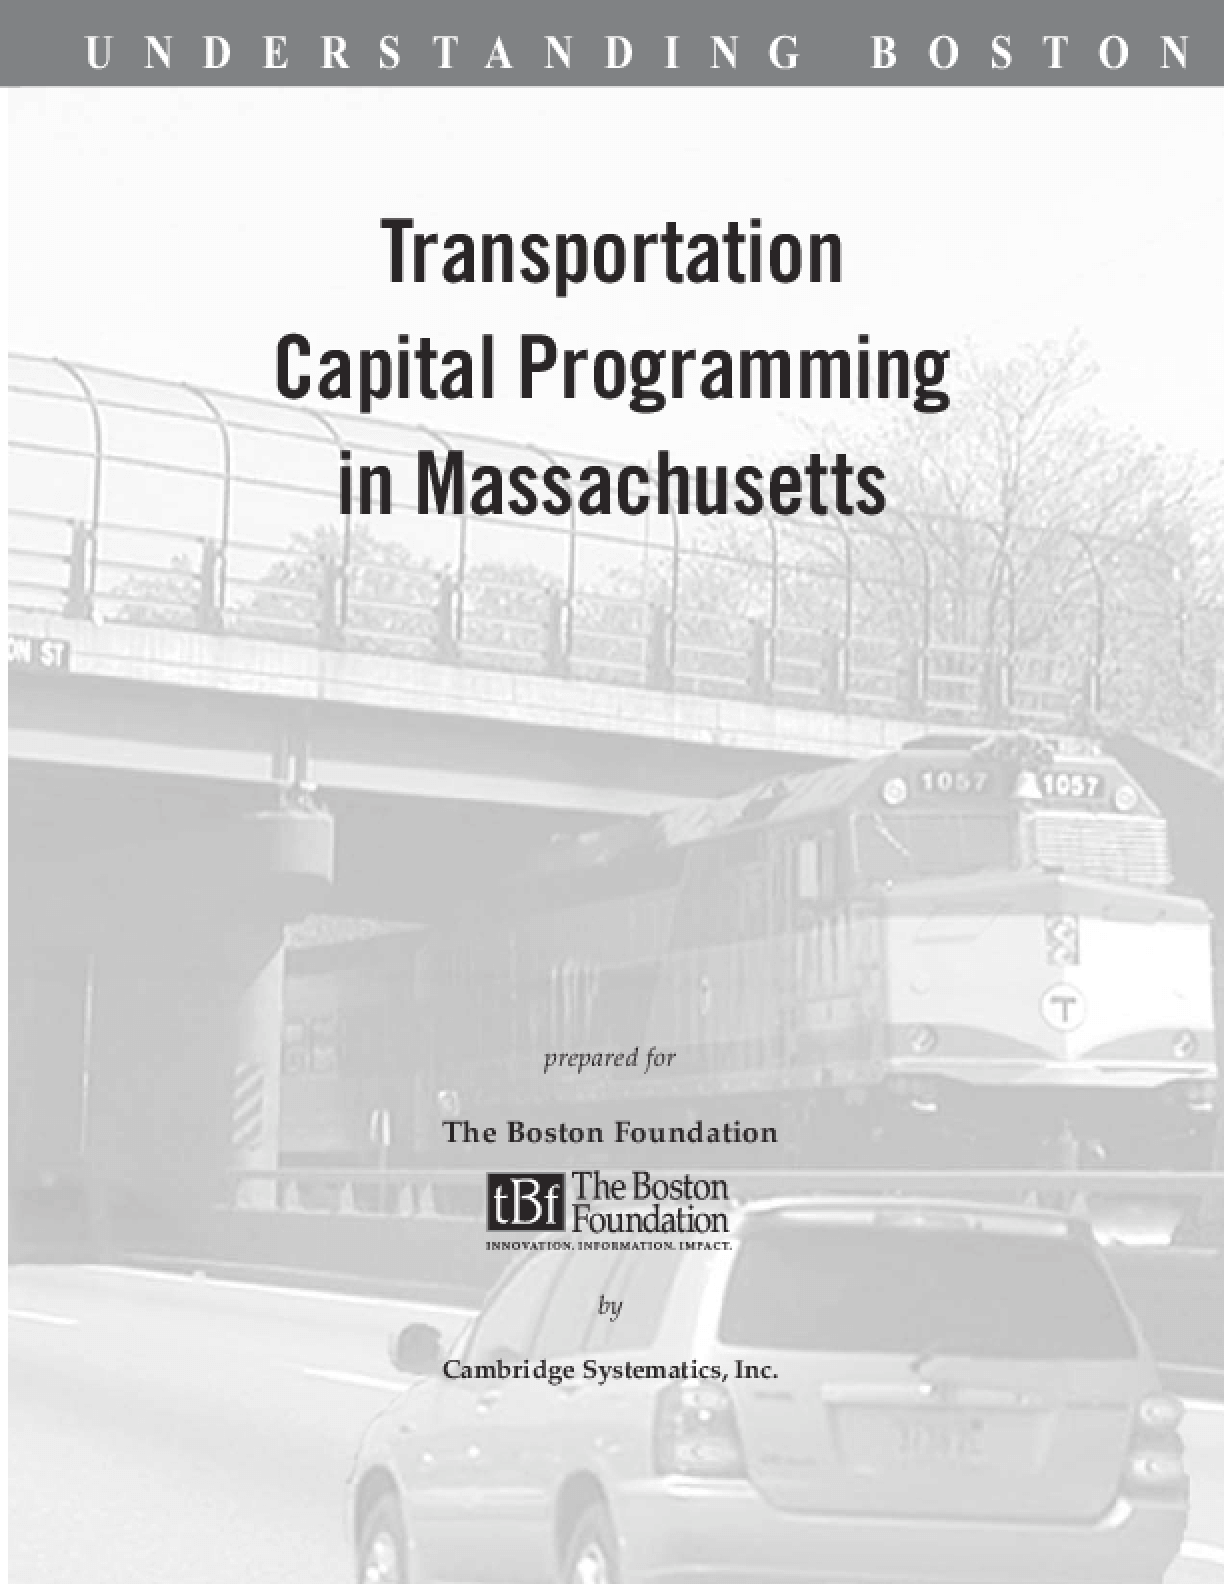 Transportation Capital Programming in Massachusetts